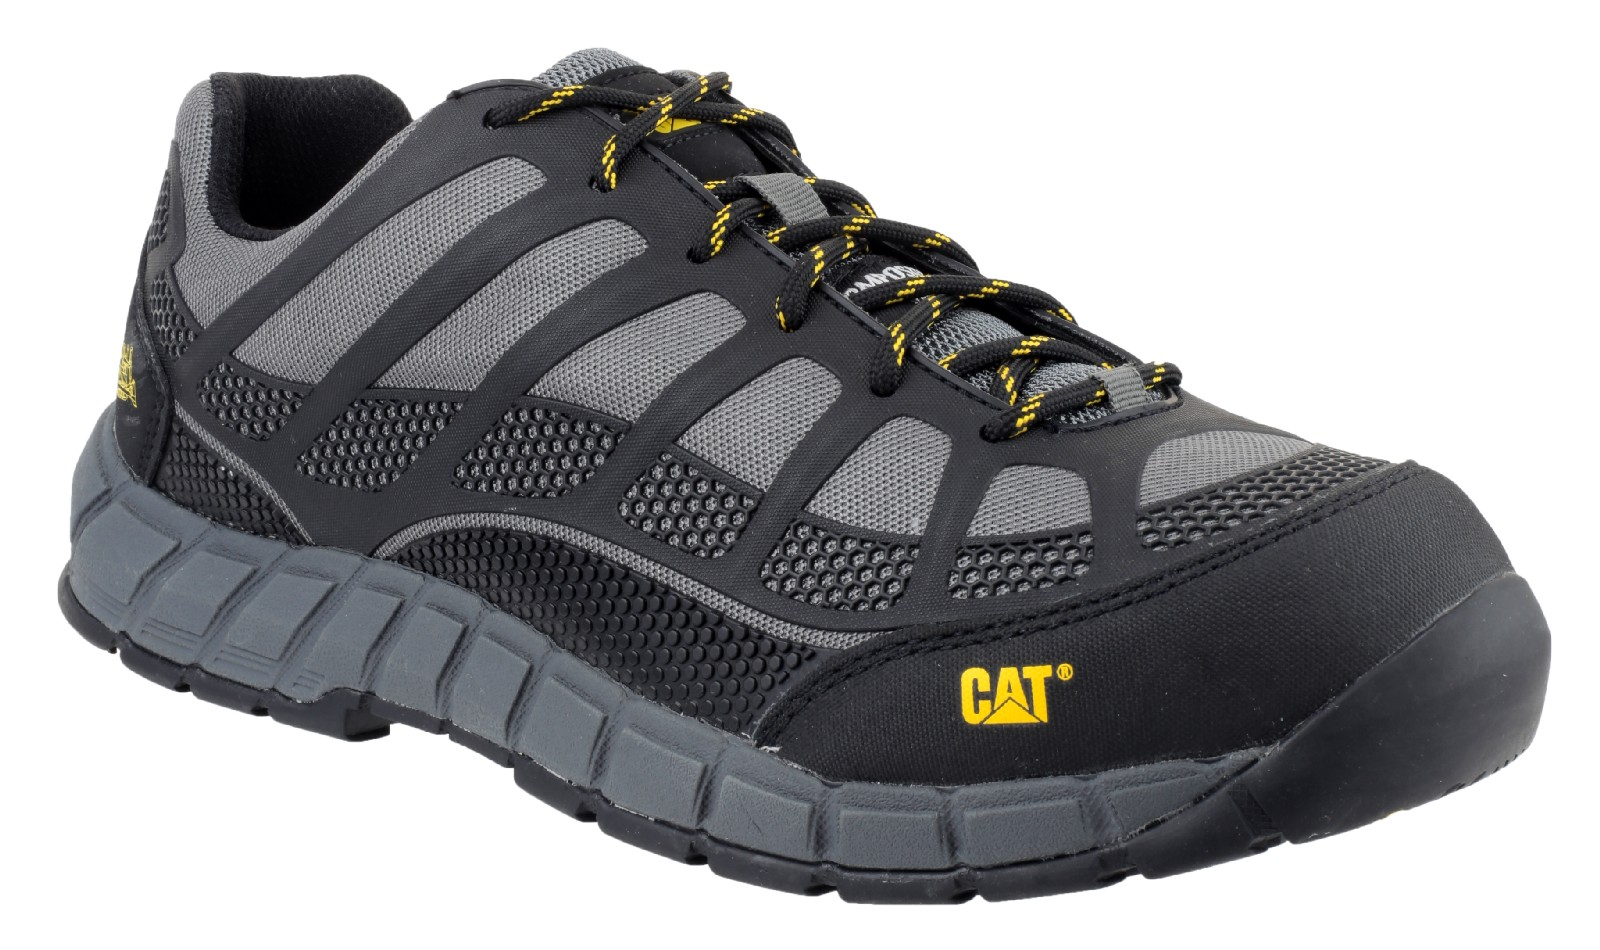 aeaf806d10 Caterpillar Streamline Safety Shoes (Charcoal) - Safety Boots R Us